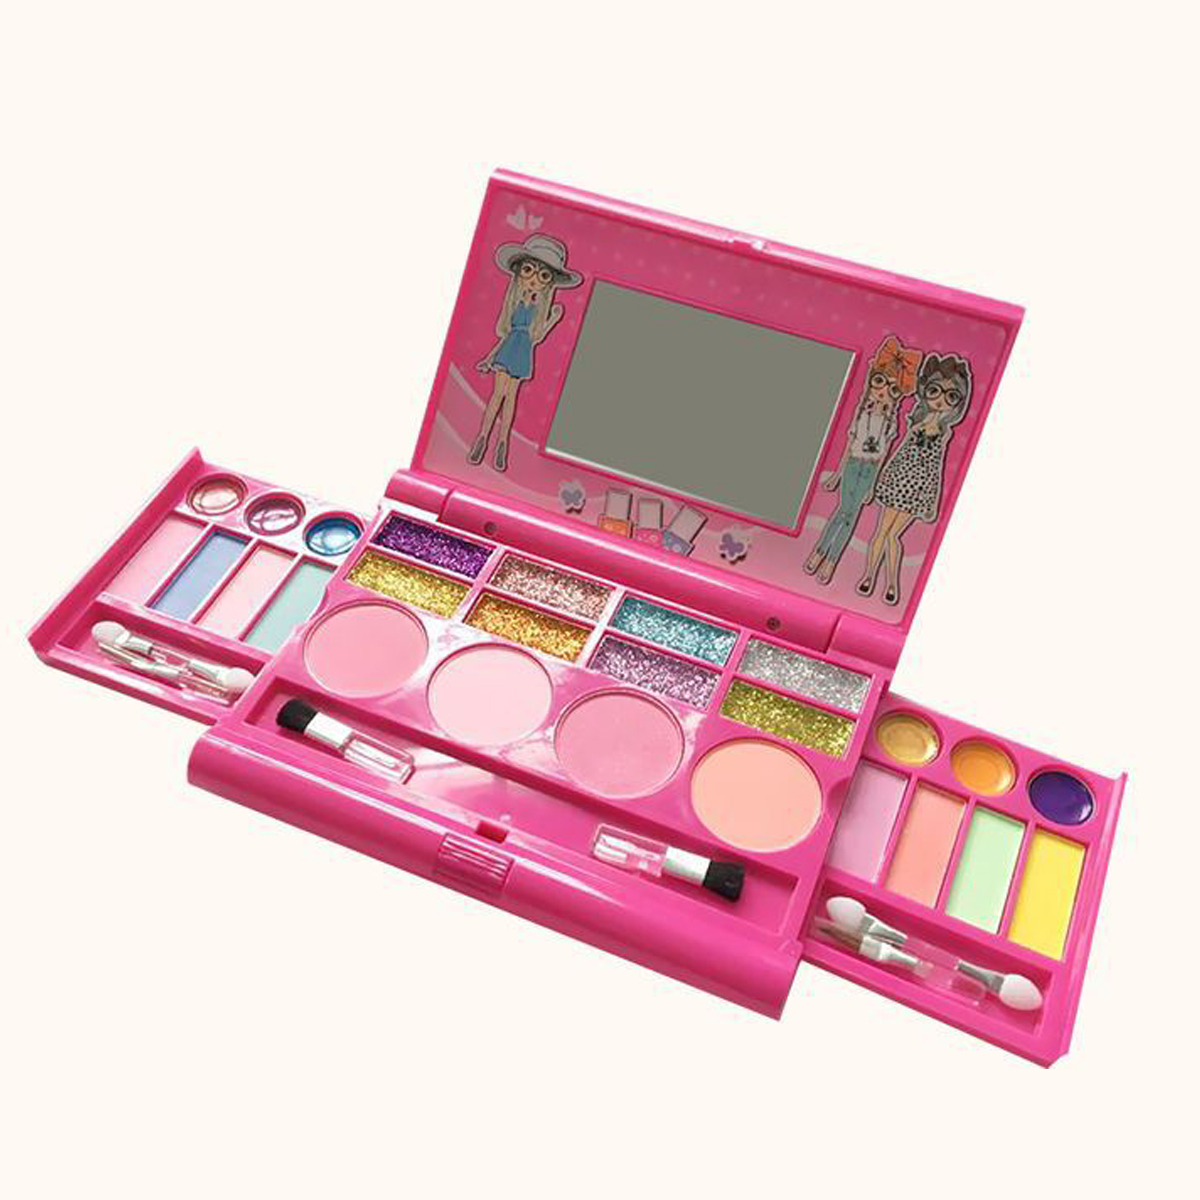 Princess Makeup Set For Kids Cosmetic Girls Kit Miniature Eyeshadow Lip Gloss Blushes Beauty Decoration Toys